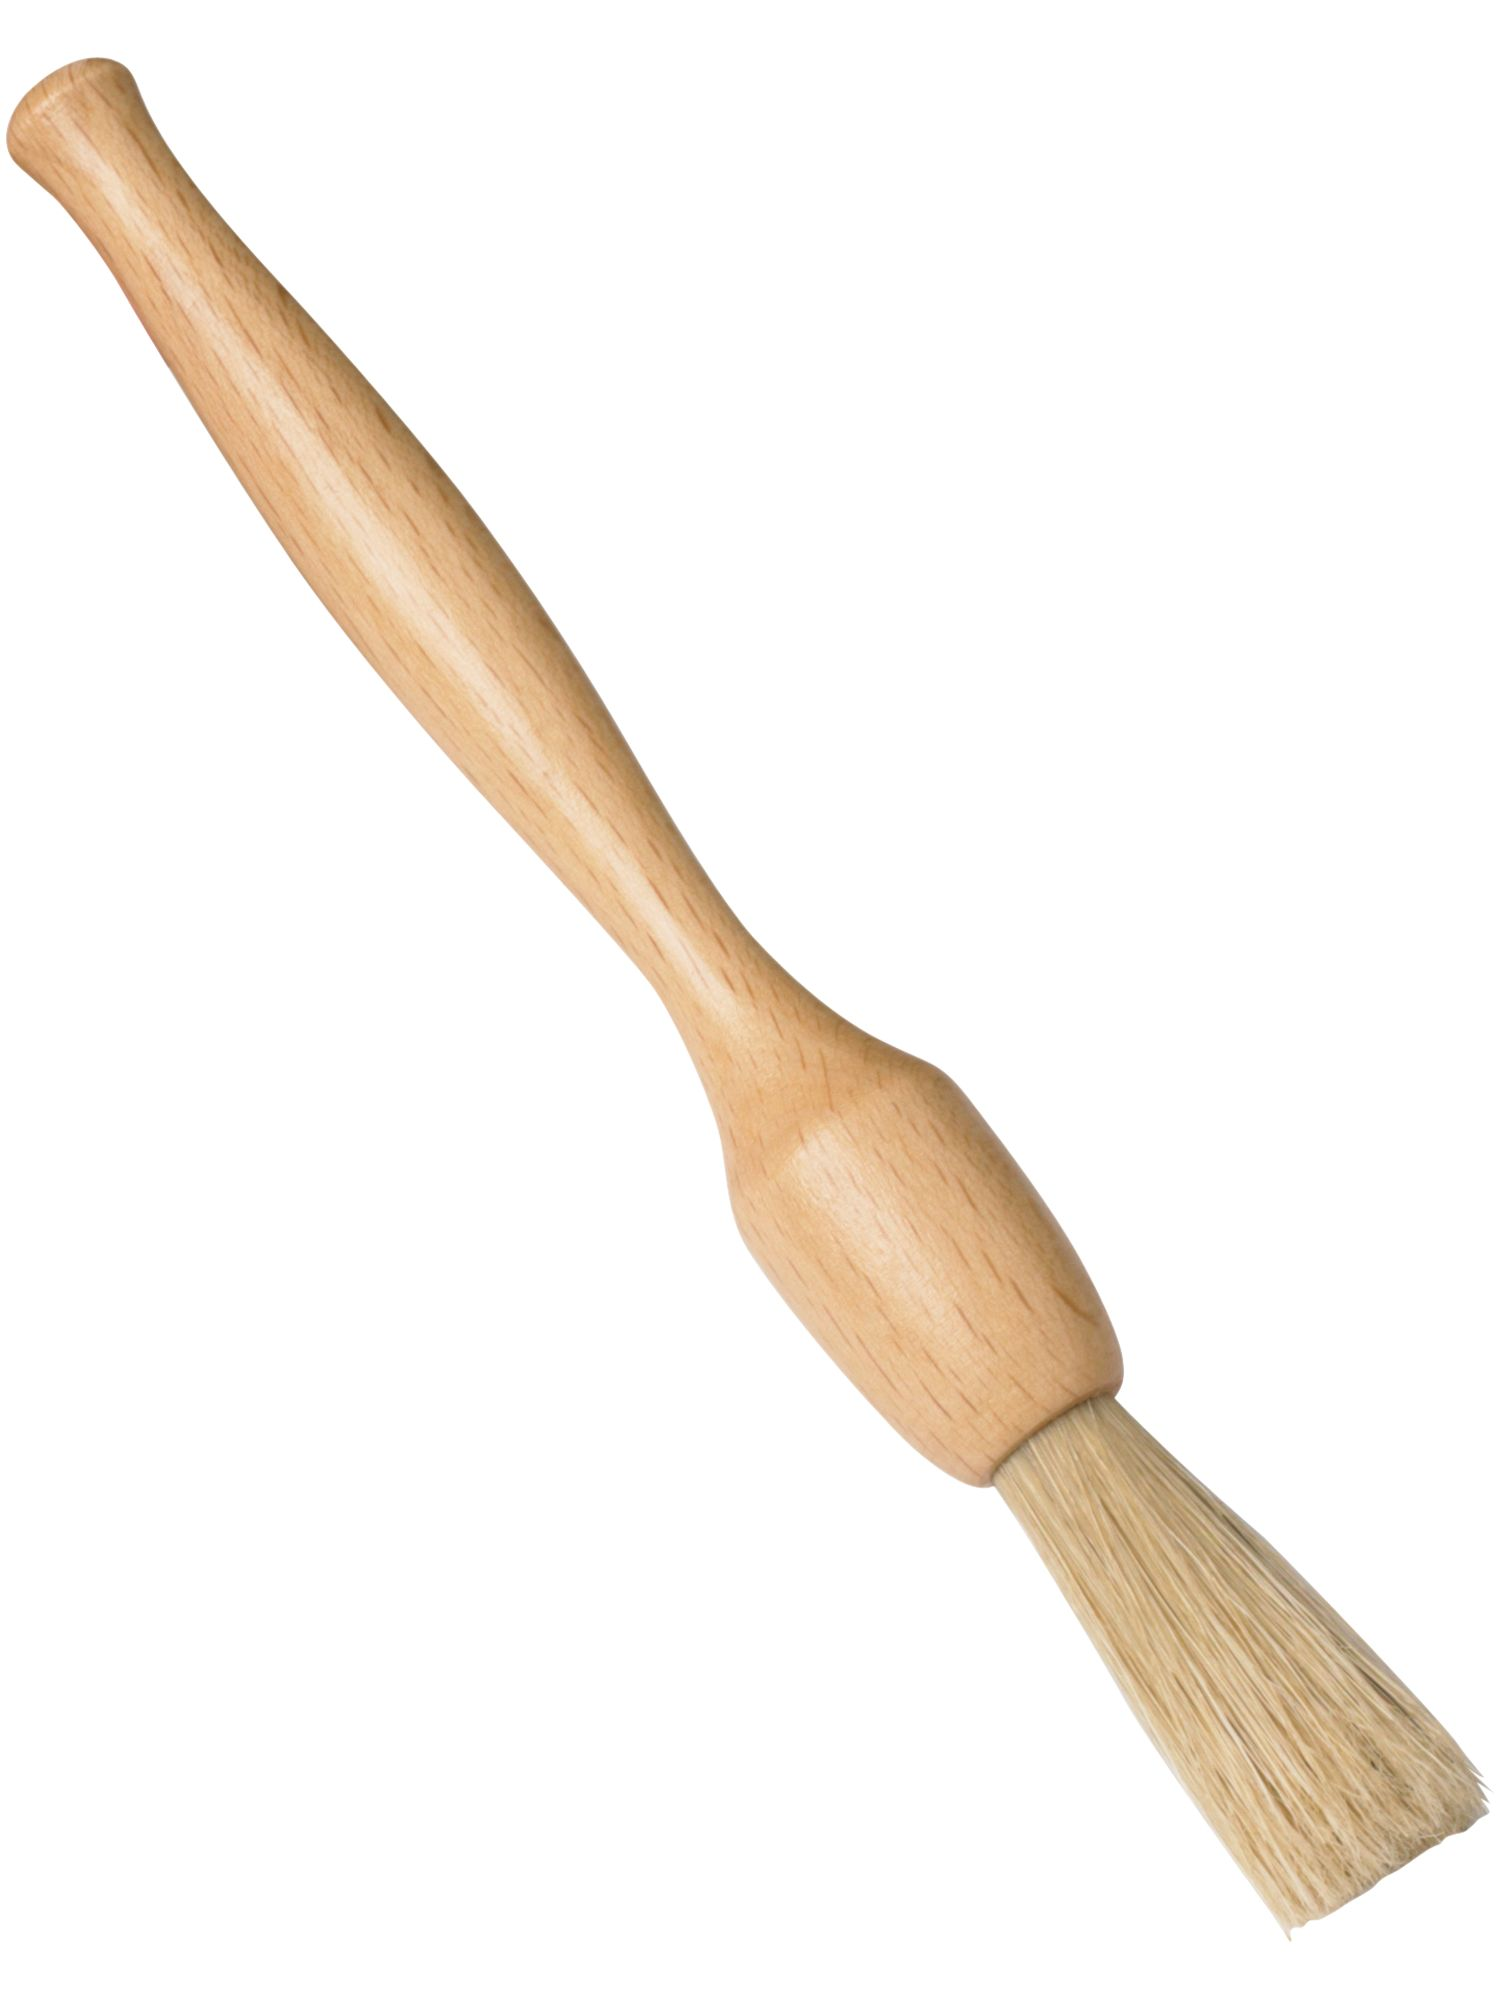 18cm wooden pastry brush